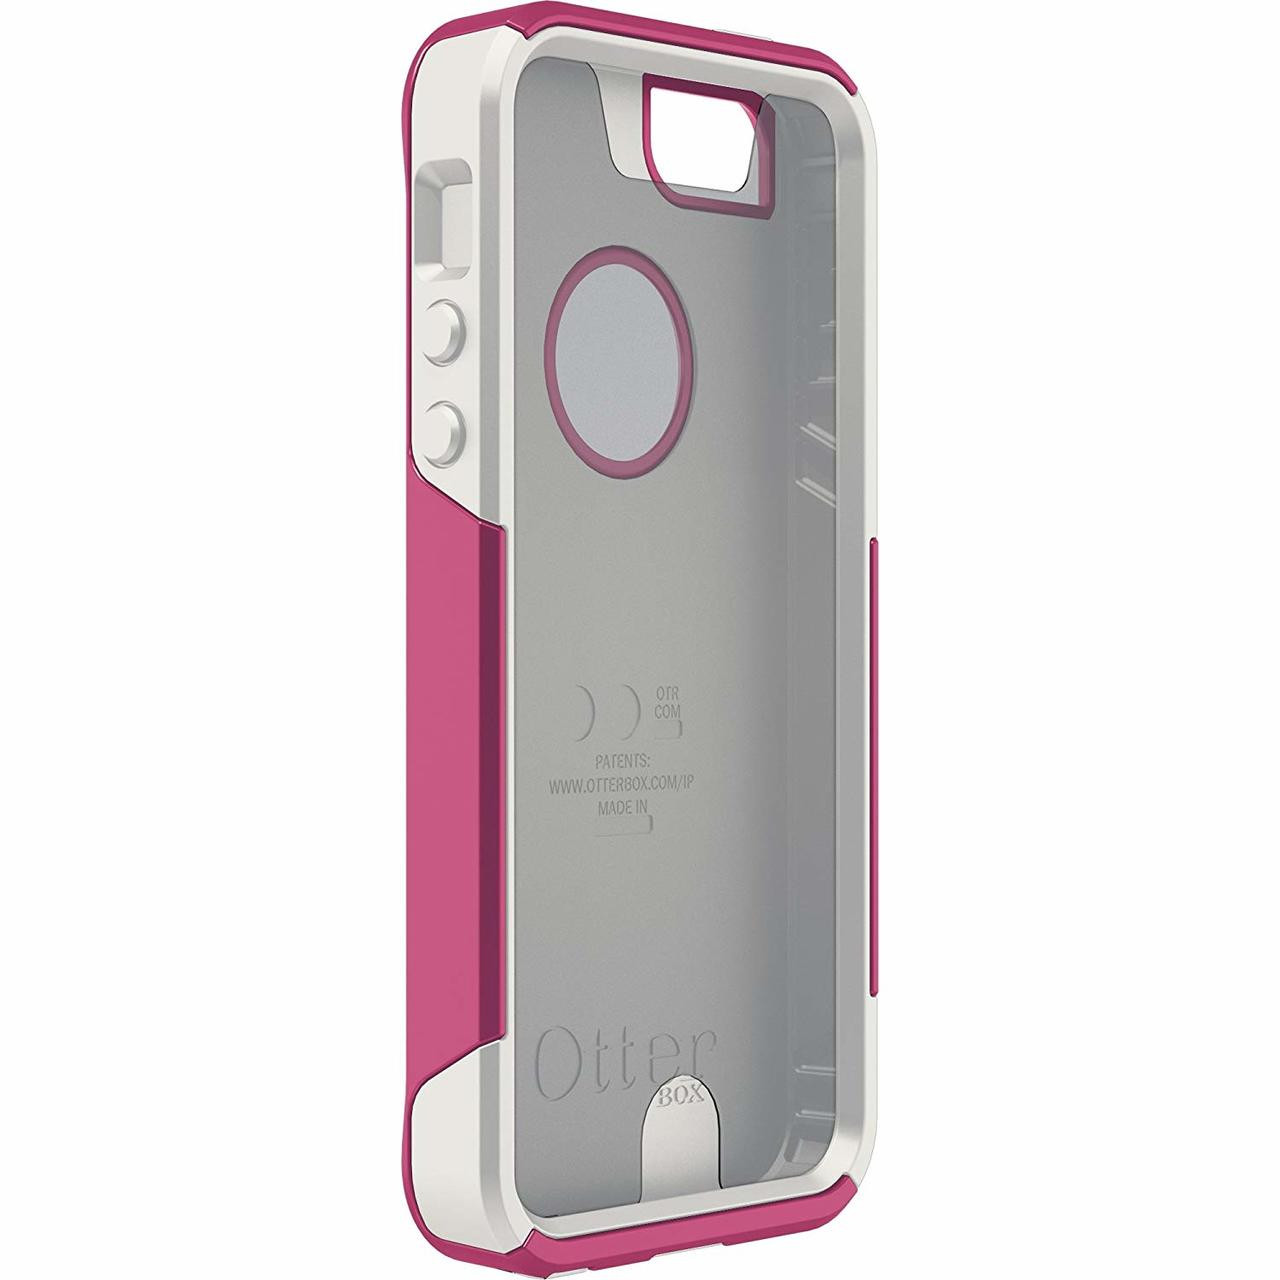 half off 2ba21 dde62 OtterBox COMMUTER SERIES Case for iPhone 5/5s/SE HOT PINK